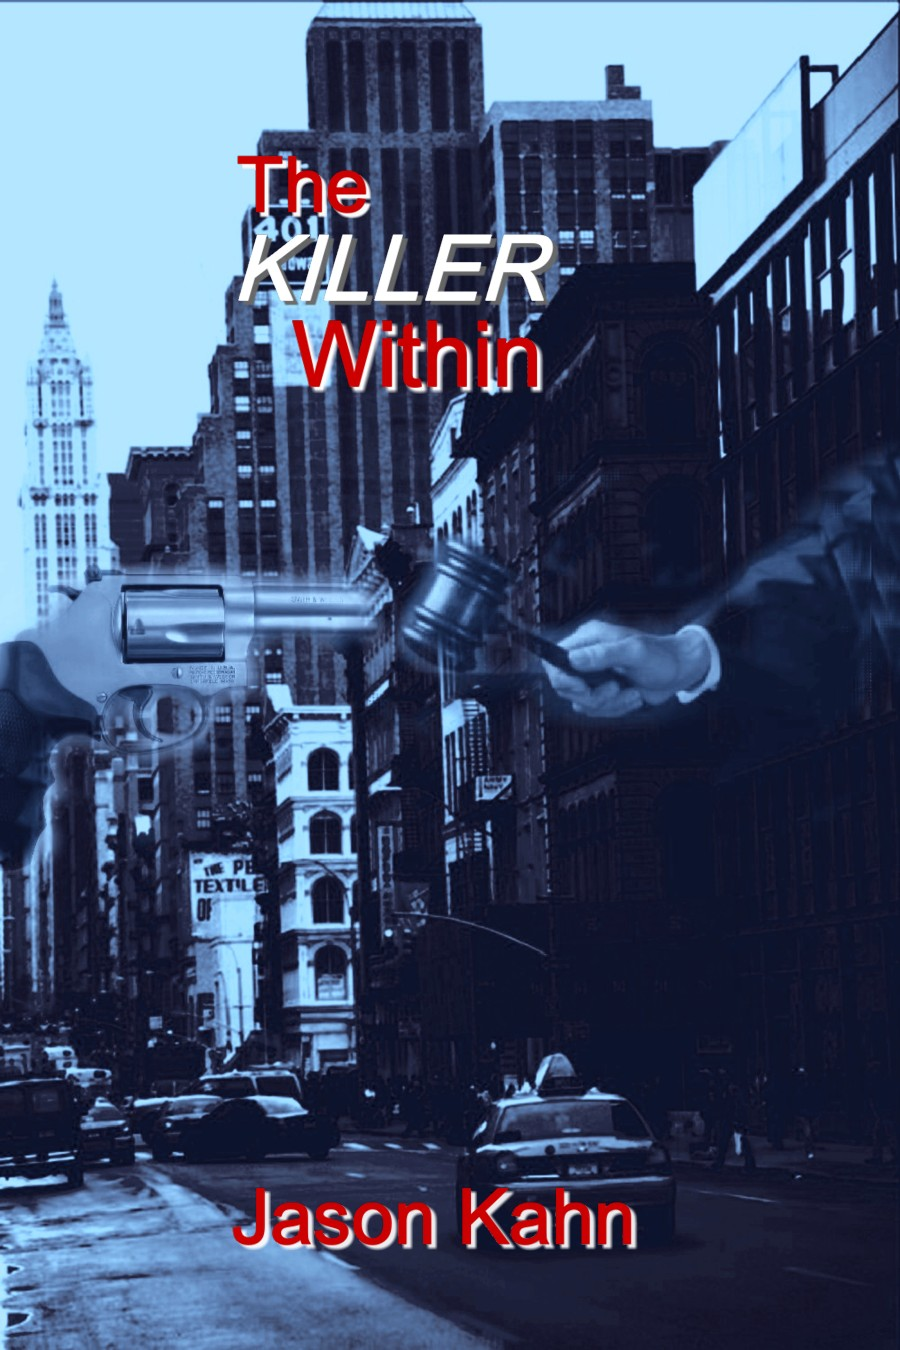 The Killer Within by Jason Kahn